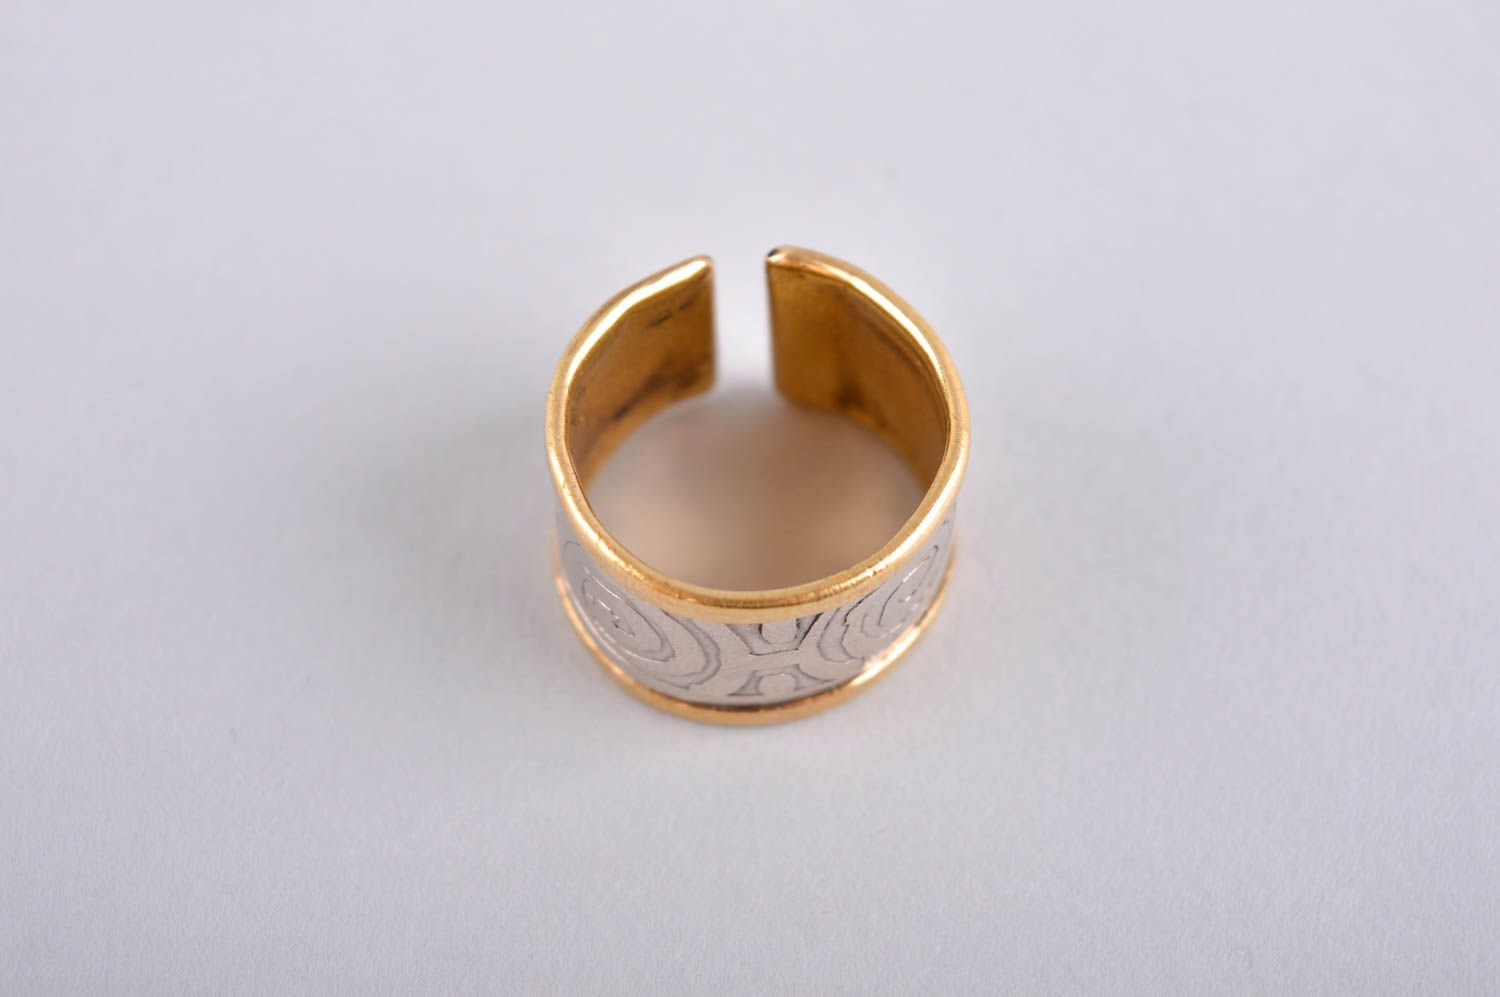 Designer ring unusual gift for women metal accessory brass ring unusual jewelry photo 2